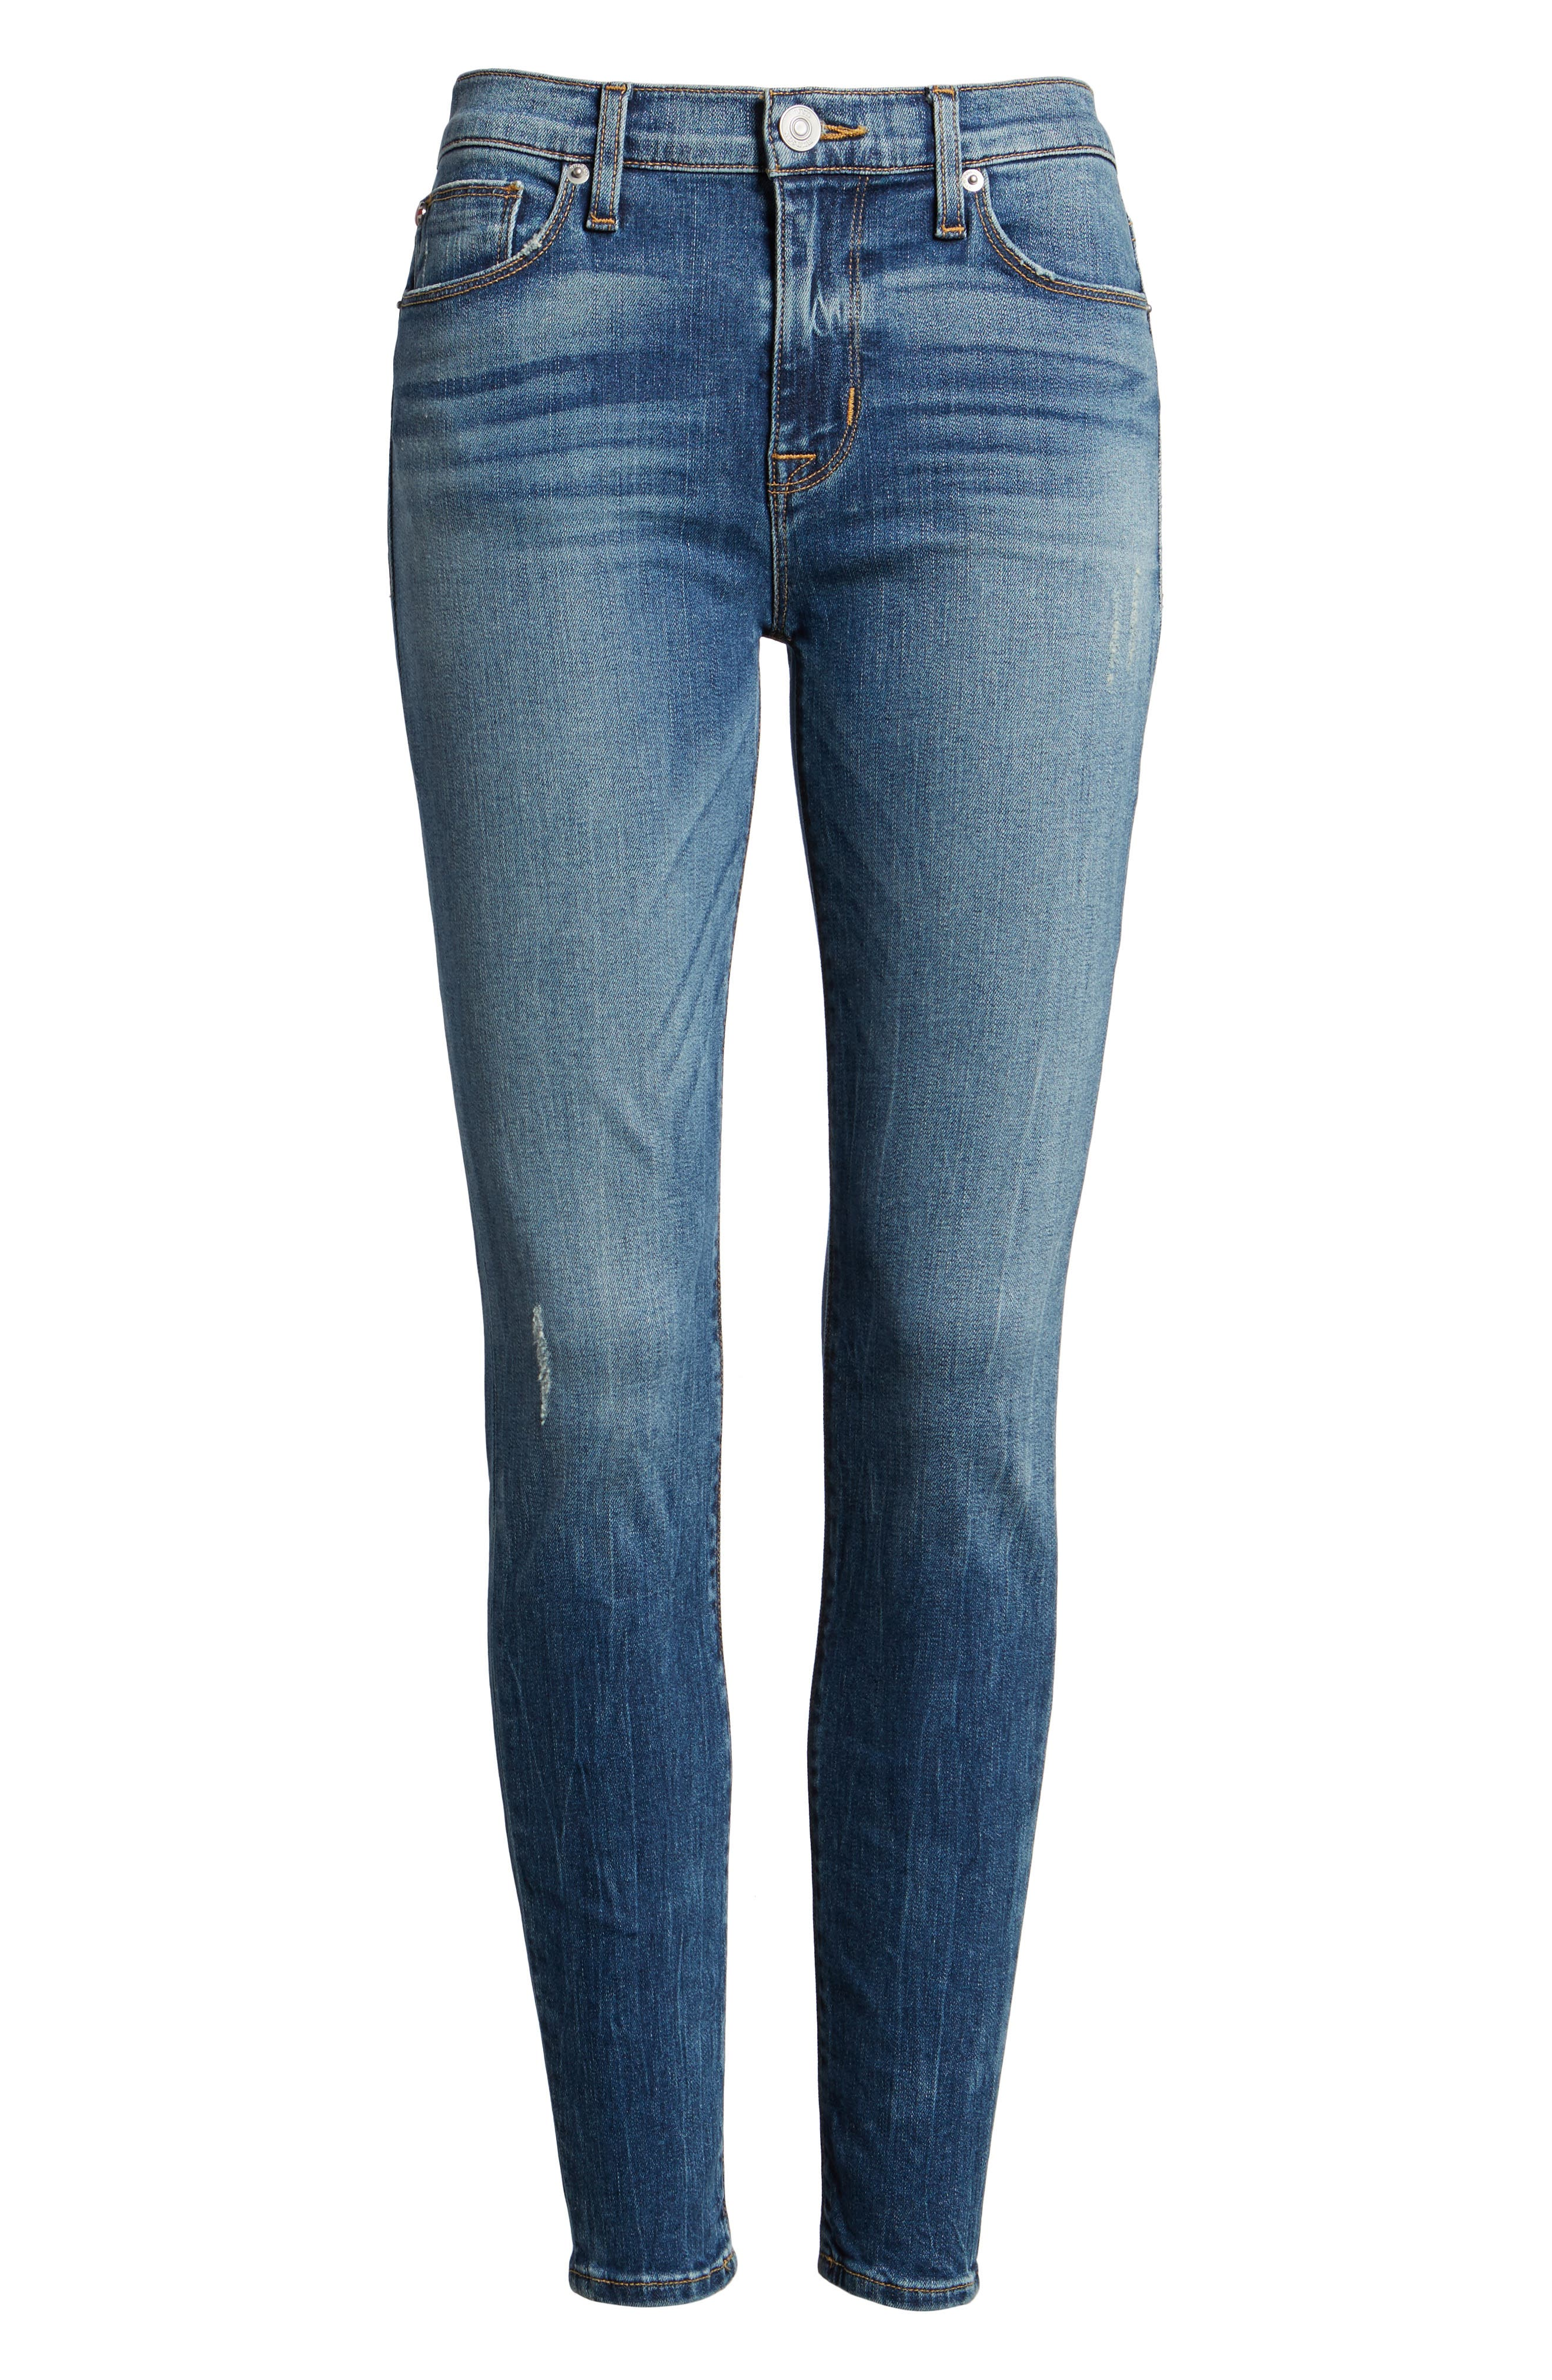 Nico Ankle Super Skinny Jeans,                         Main,                         color, Lifeline